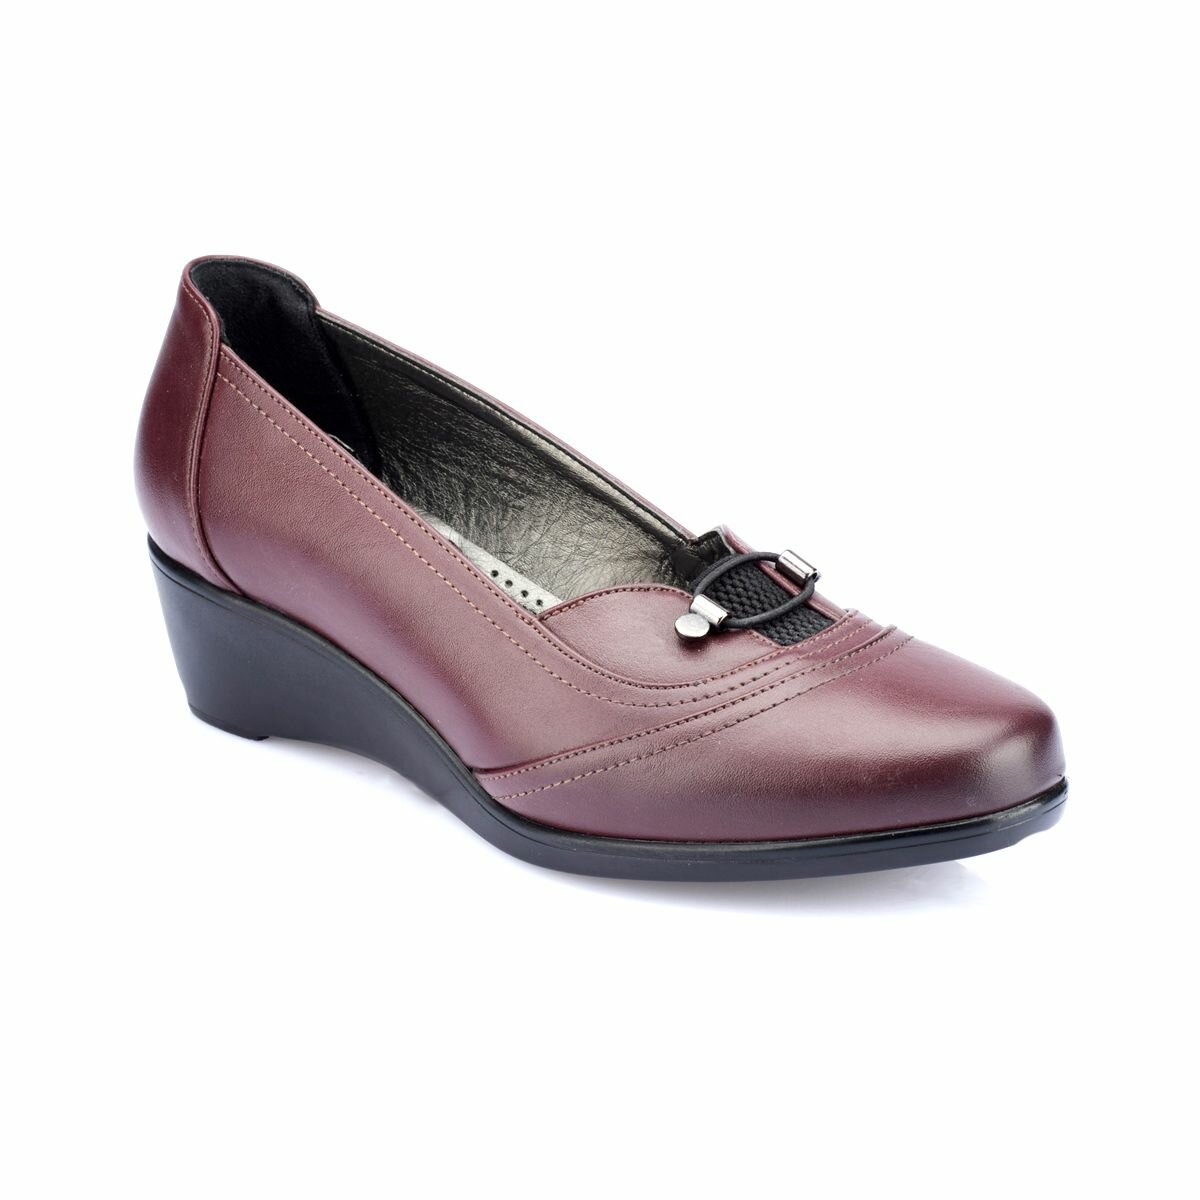 FLO 82.150054.Z Burgundy Women 'S Shoes Polaris